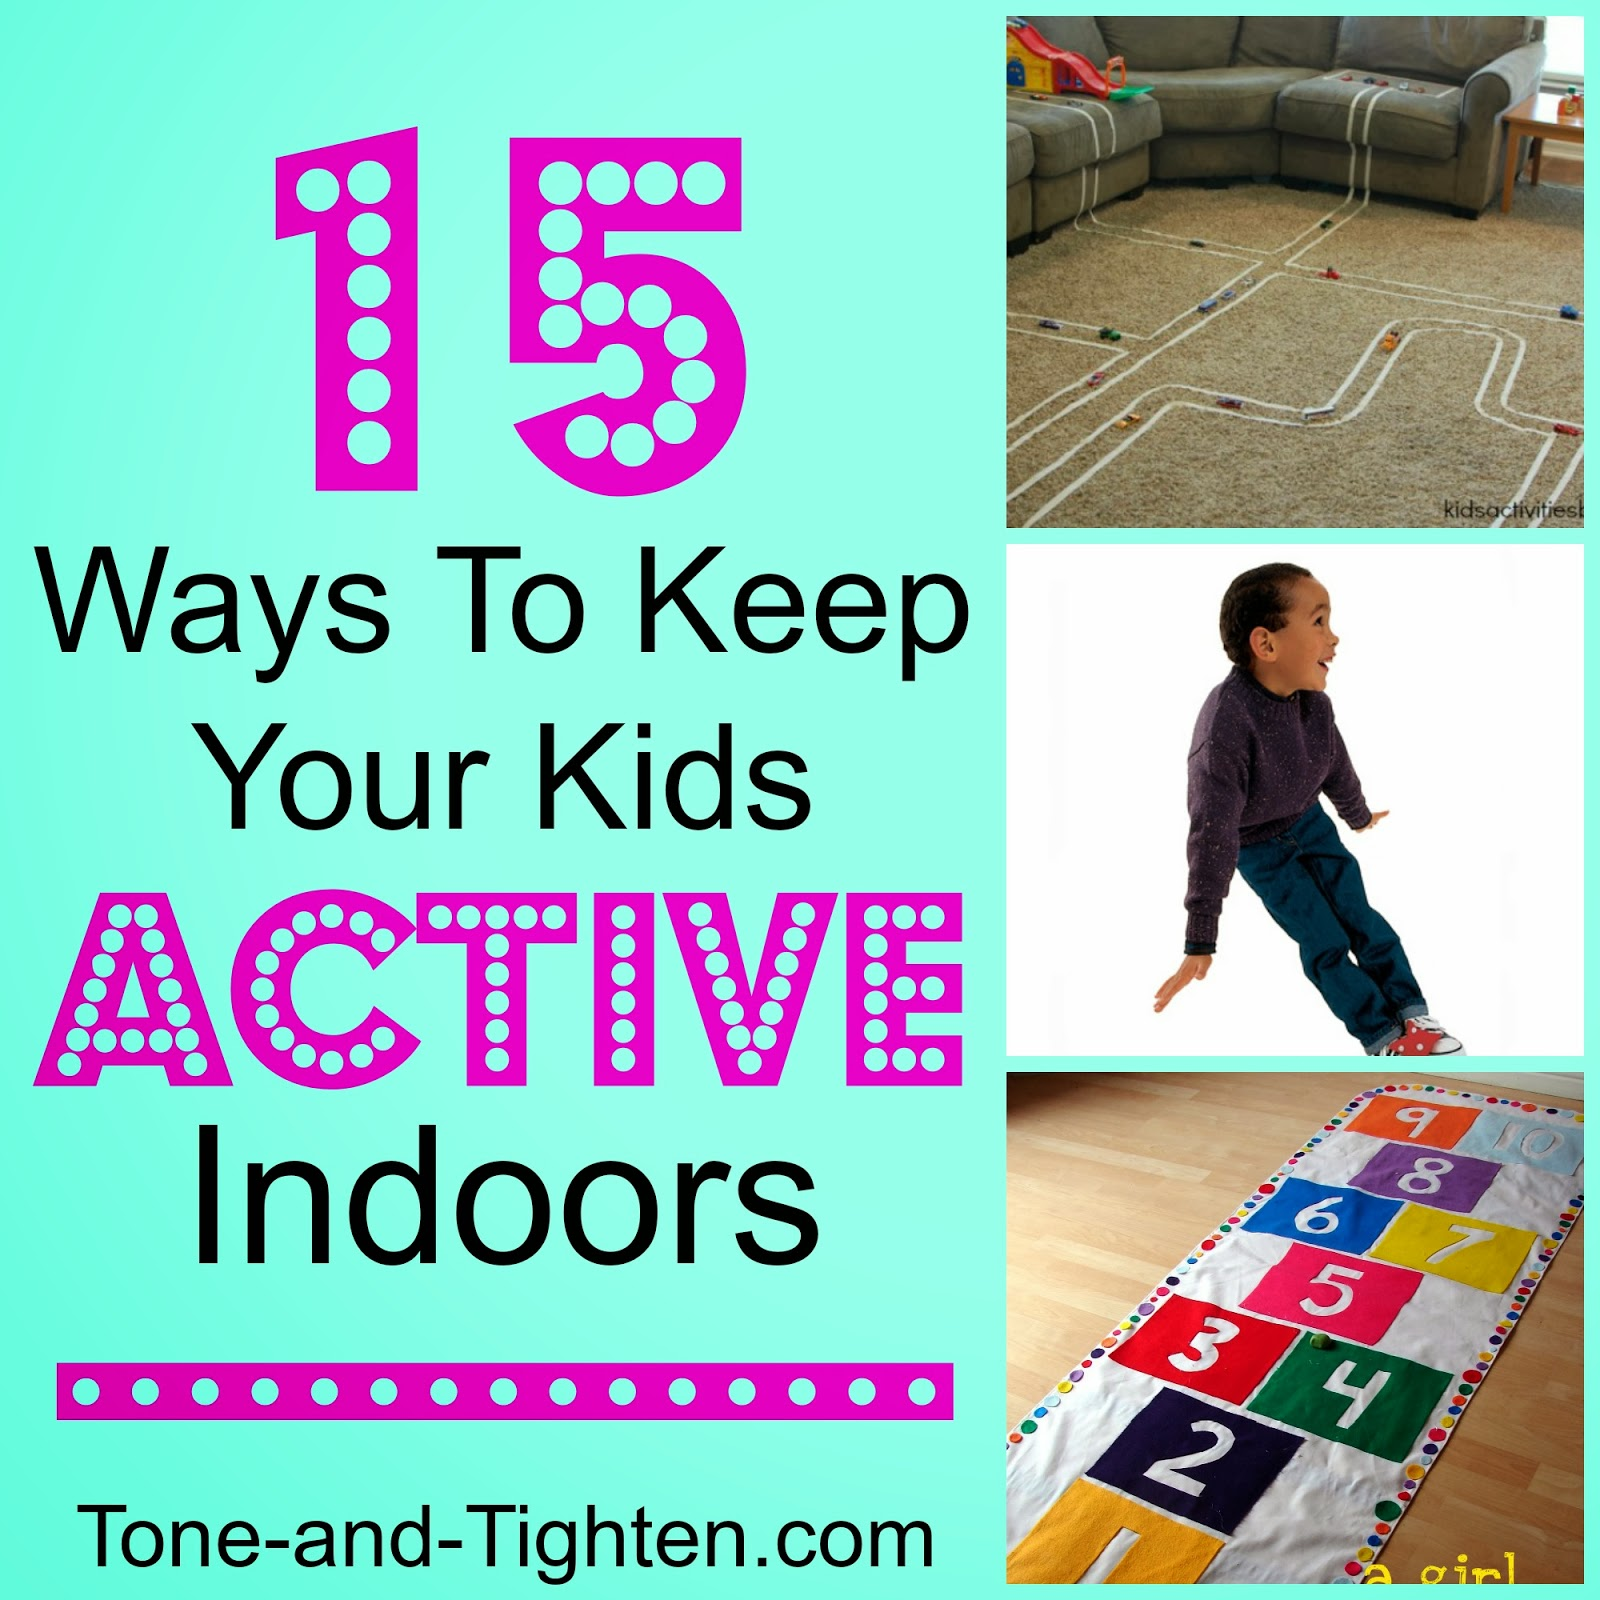 15 Ways To Keep Your Kids Active Indoors Fun Rainy Day Activities Tone And Tighten